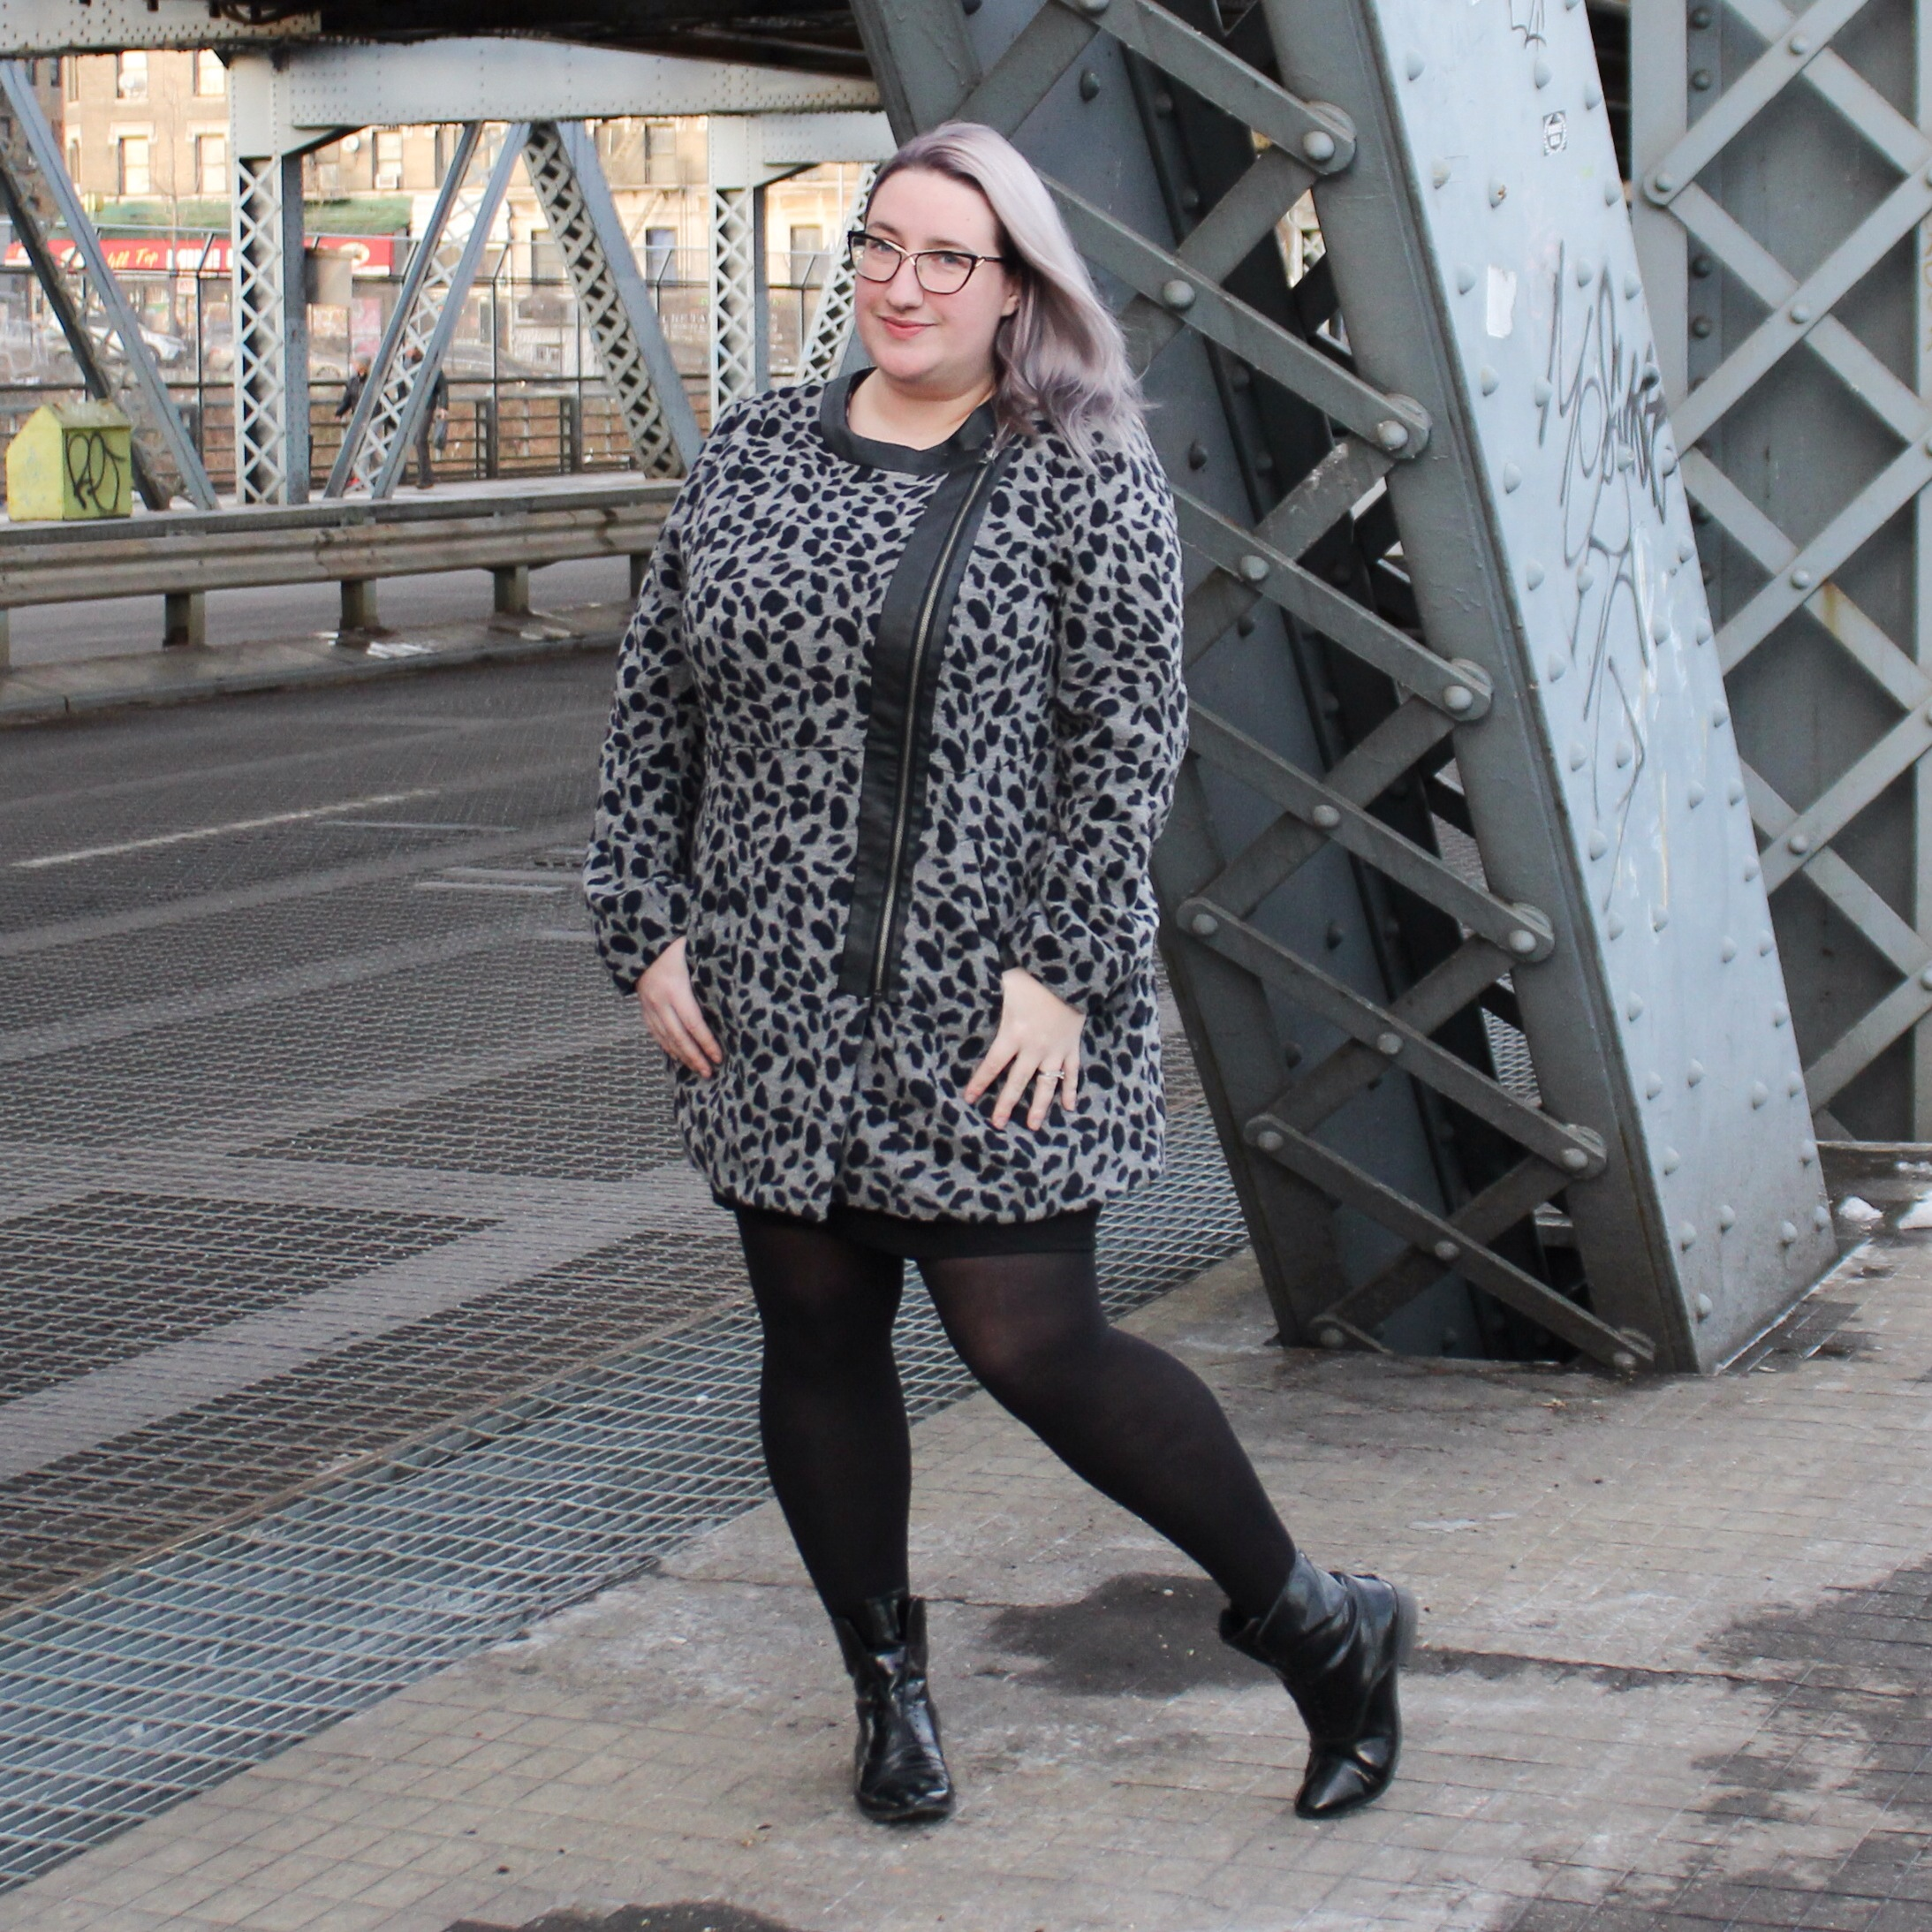 OOTD: Ditching the Black Coat